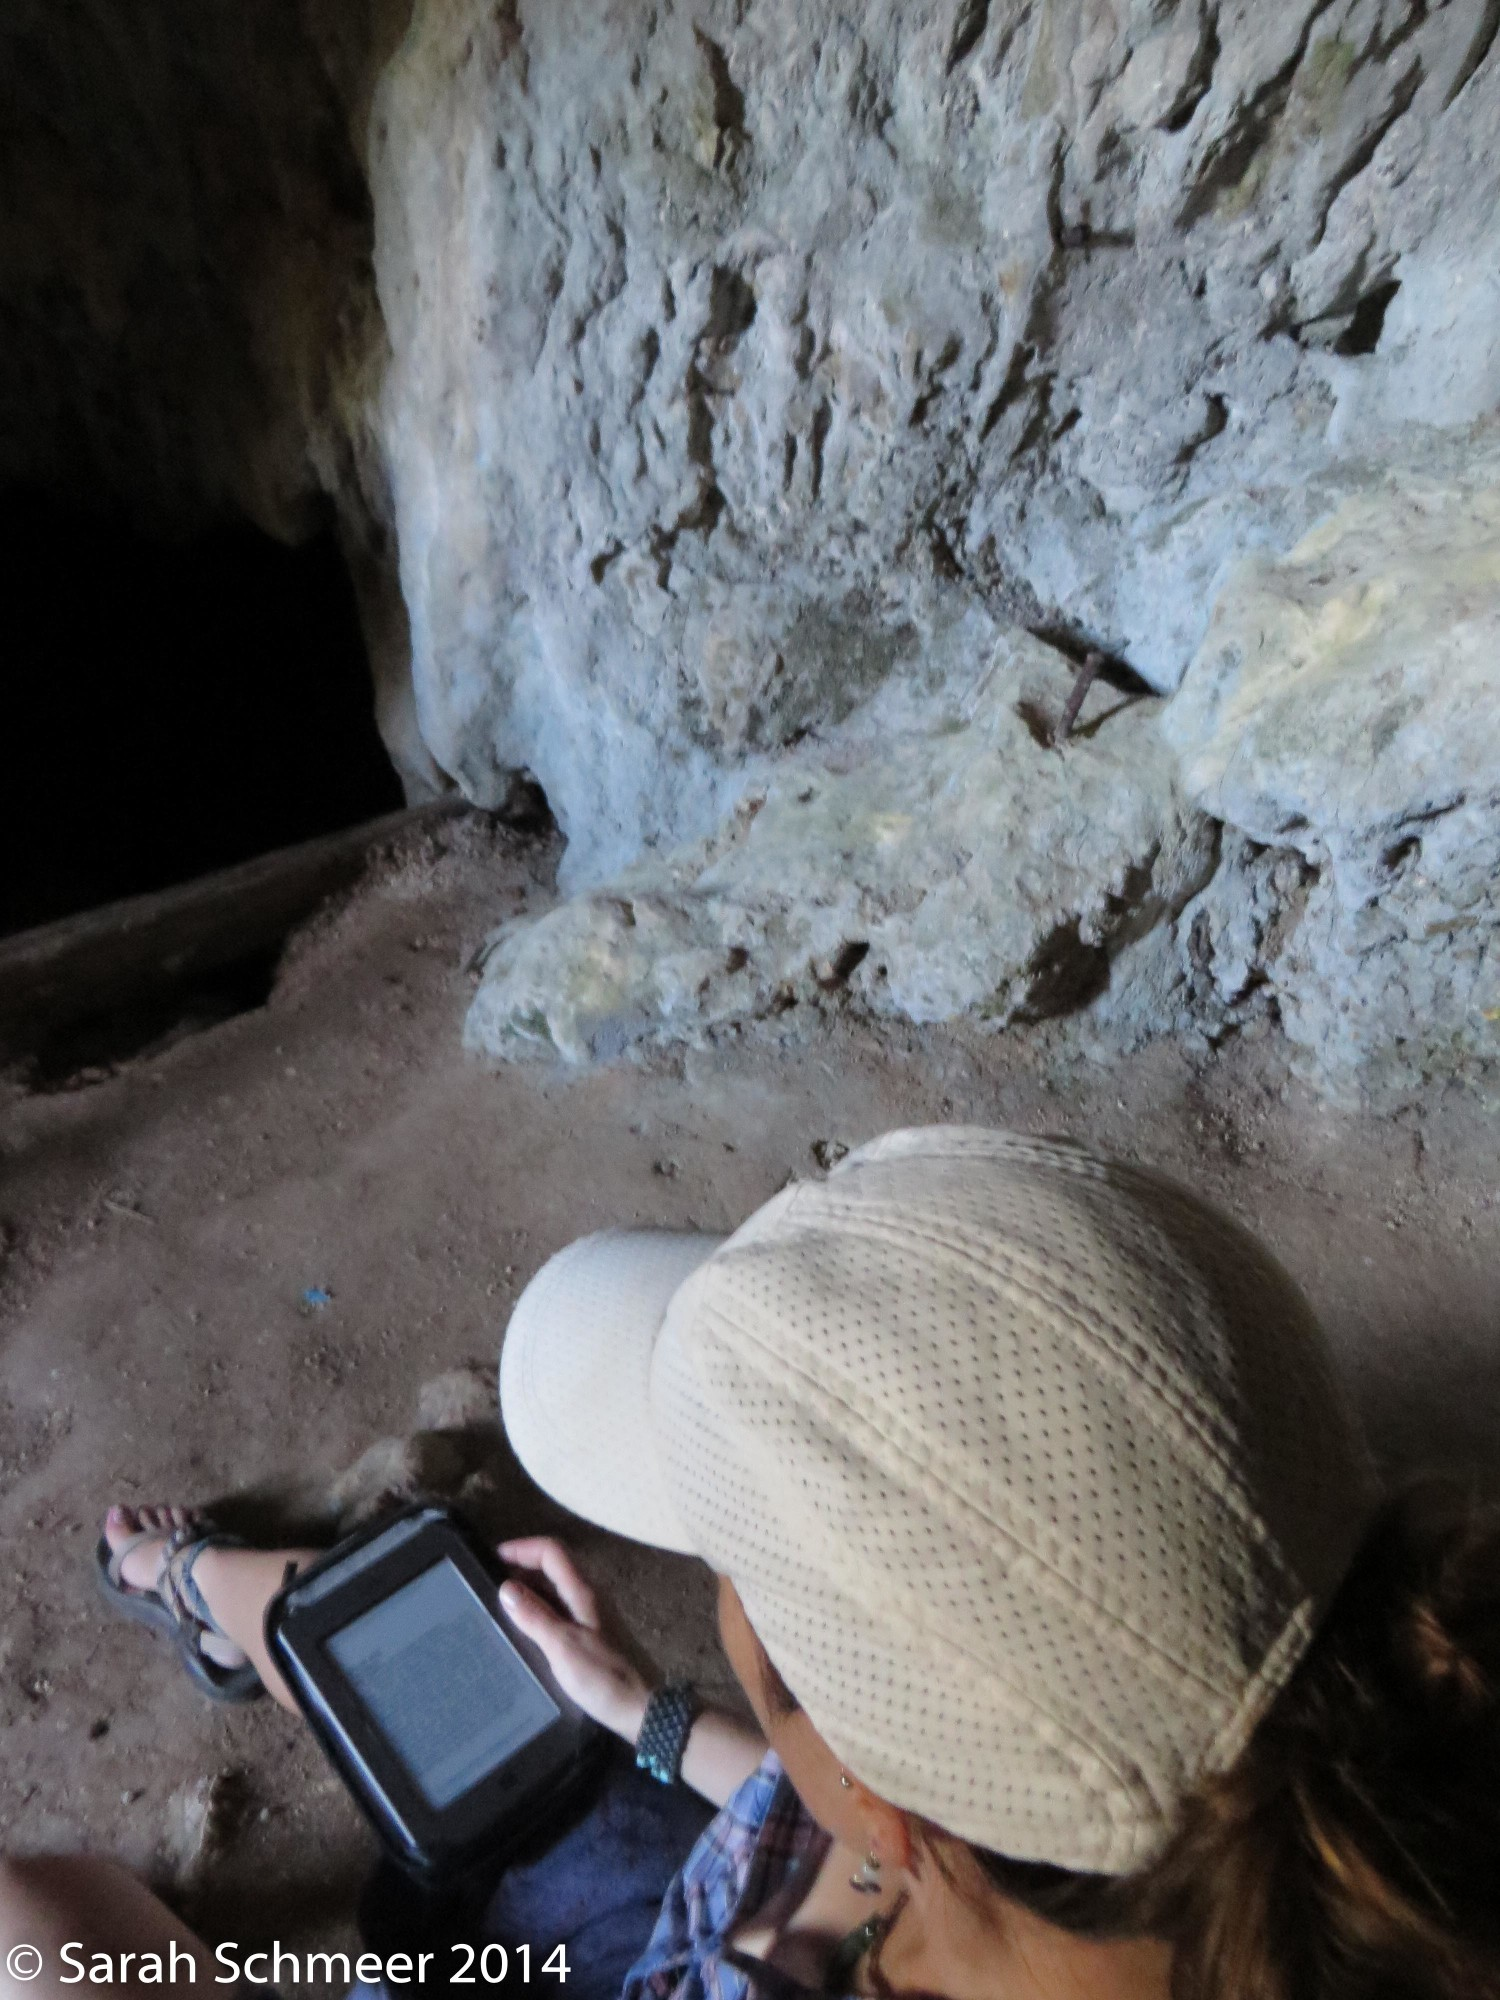 Reading the Odyssey in the Cave of Nymphs, Itahca